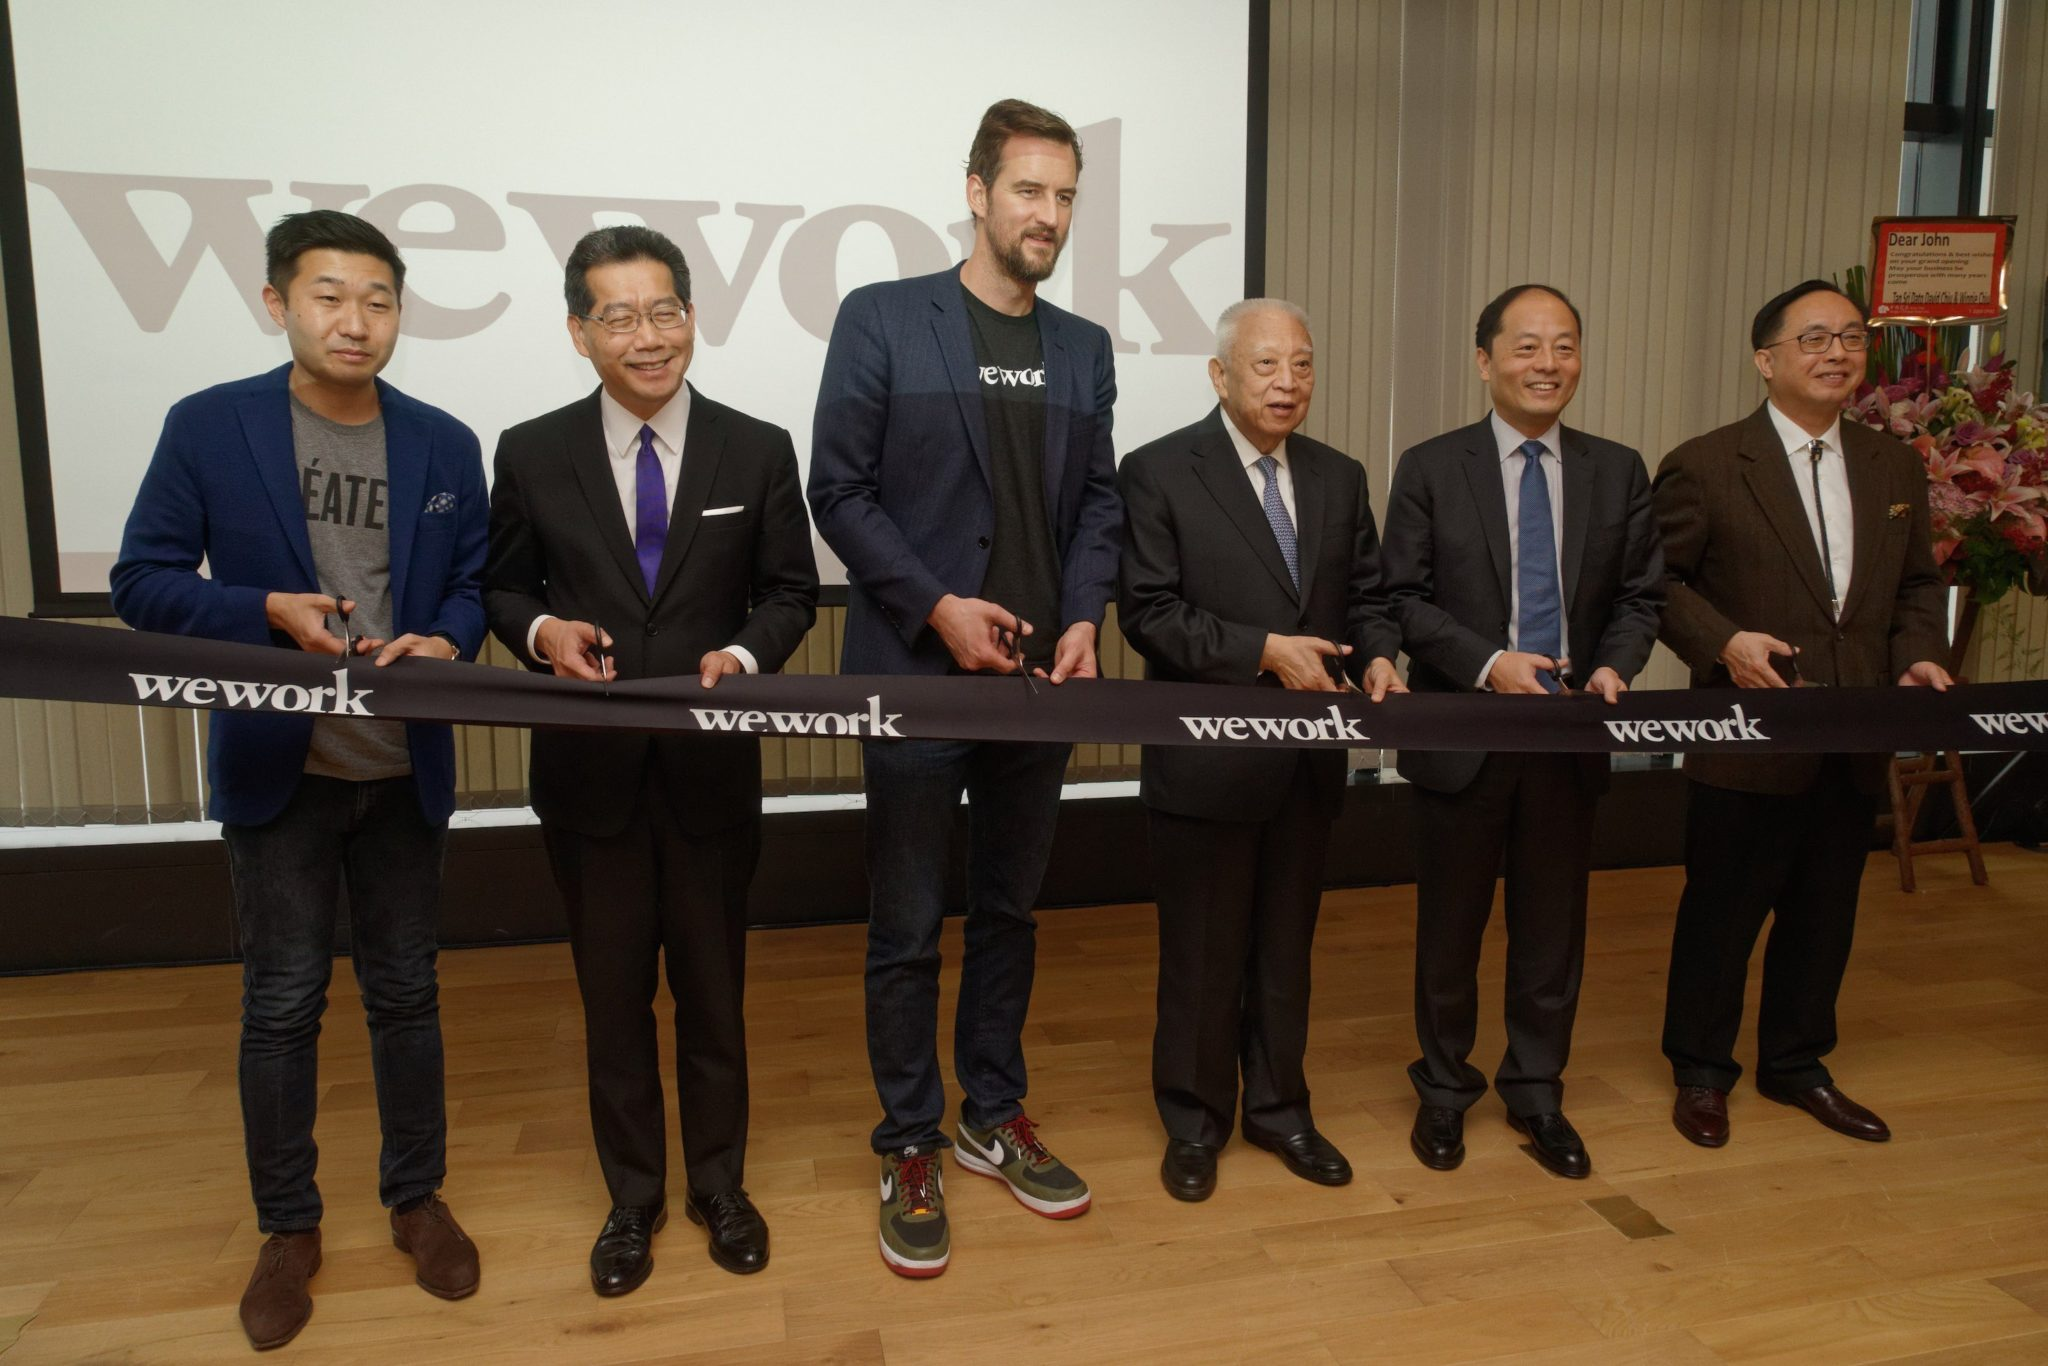 (From Left to Right) Mr. Ole Ruch, Managing Director for Strategy, Asia and Australia of WeWork; Mr. Gregory So, Secretary for Commerce and Economic Development of the HKSAR Government; Mr. Miguel McKelvey, Co-founder and Chief Creative Officer of WeWork; The Honourable Tung Chee-hwa, Vice Chairman of the 12th National Committee of Chinese People's Political Consultative Conference; Mr. John Zhao, Executive Vice President of Legend Holdings and Chairman and CEO of Hony Capital; and Mr. Nicholas Yang, Secretary for Innovation and Technology of the HKSAR Government, officiating at the Opening Ceremony of WeWork Hong Kong.